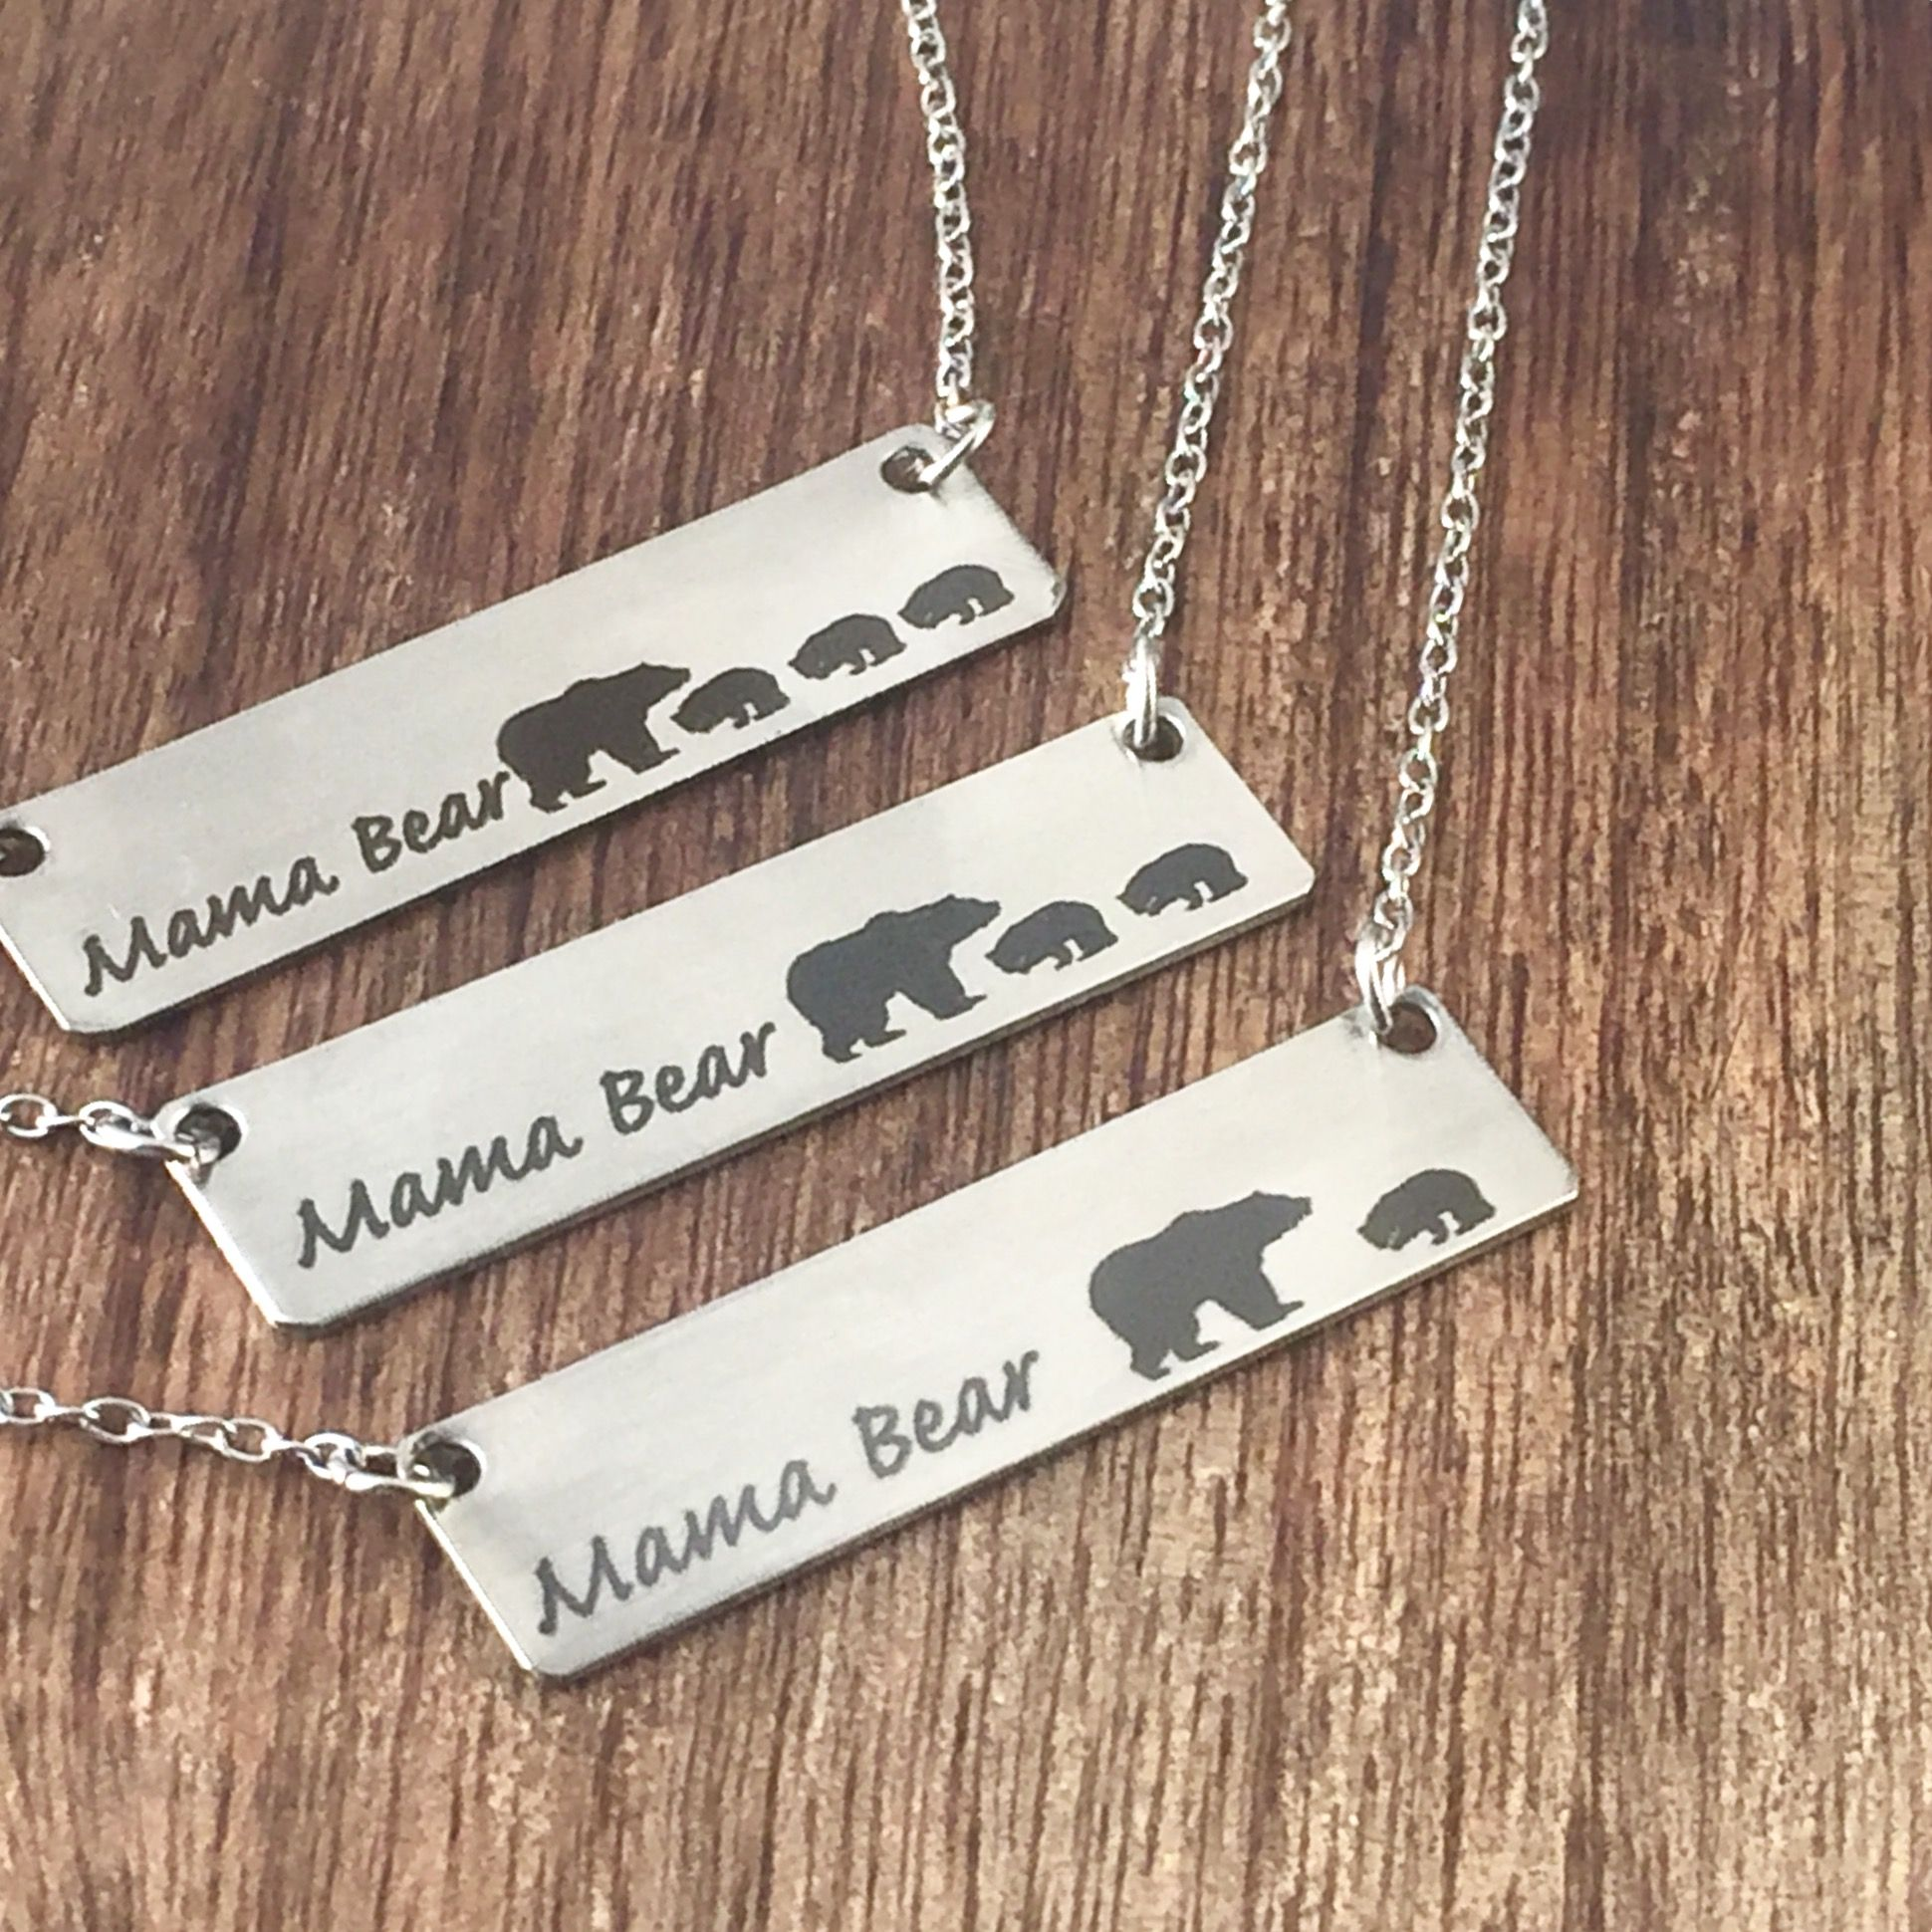 Mama bear necklace with up to 7 cubs gift for wife for girlfriend mama bear necklace with up to 7 cubs gift for wife for girlfriend for mom mothers negle Choice Image